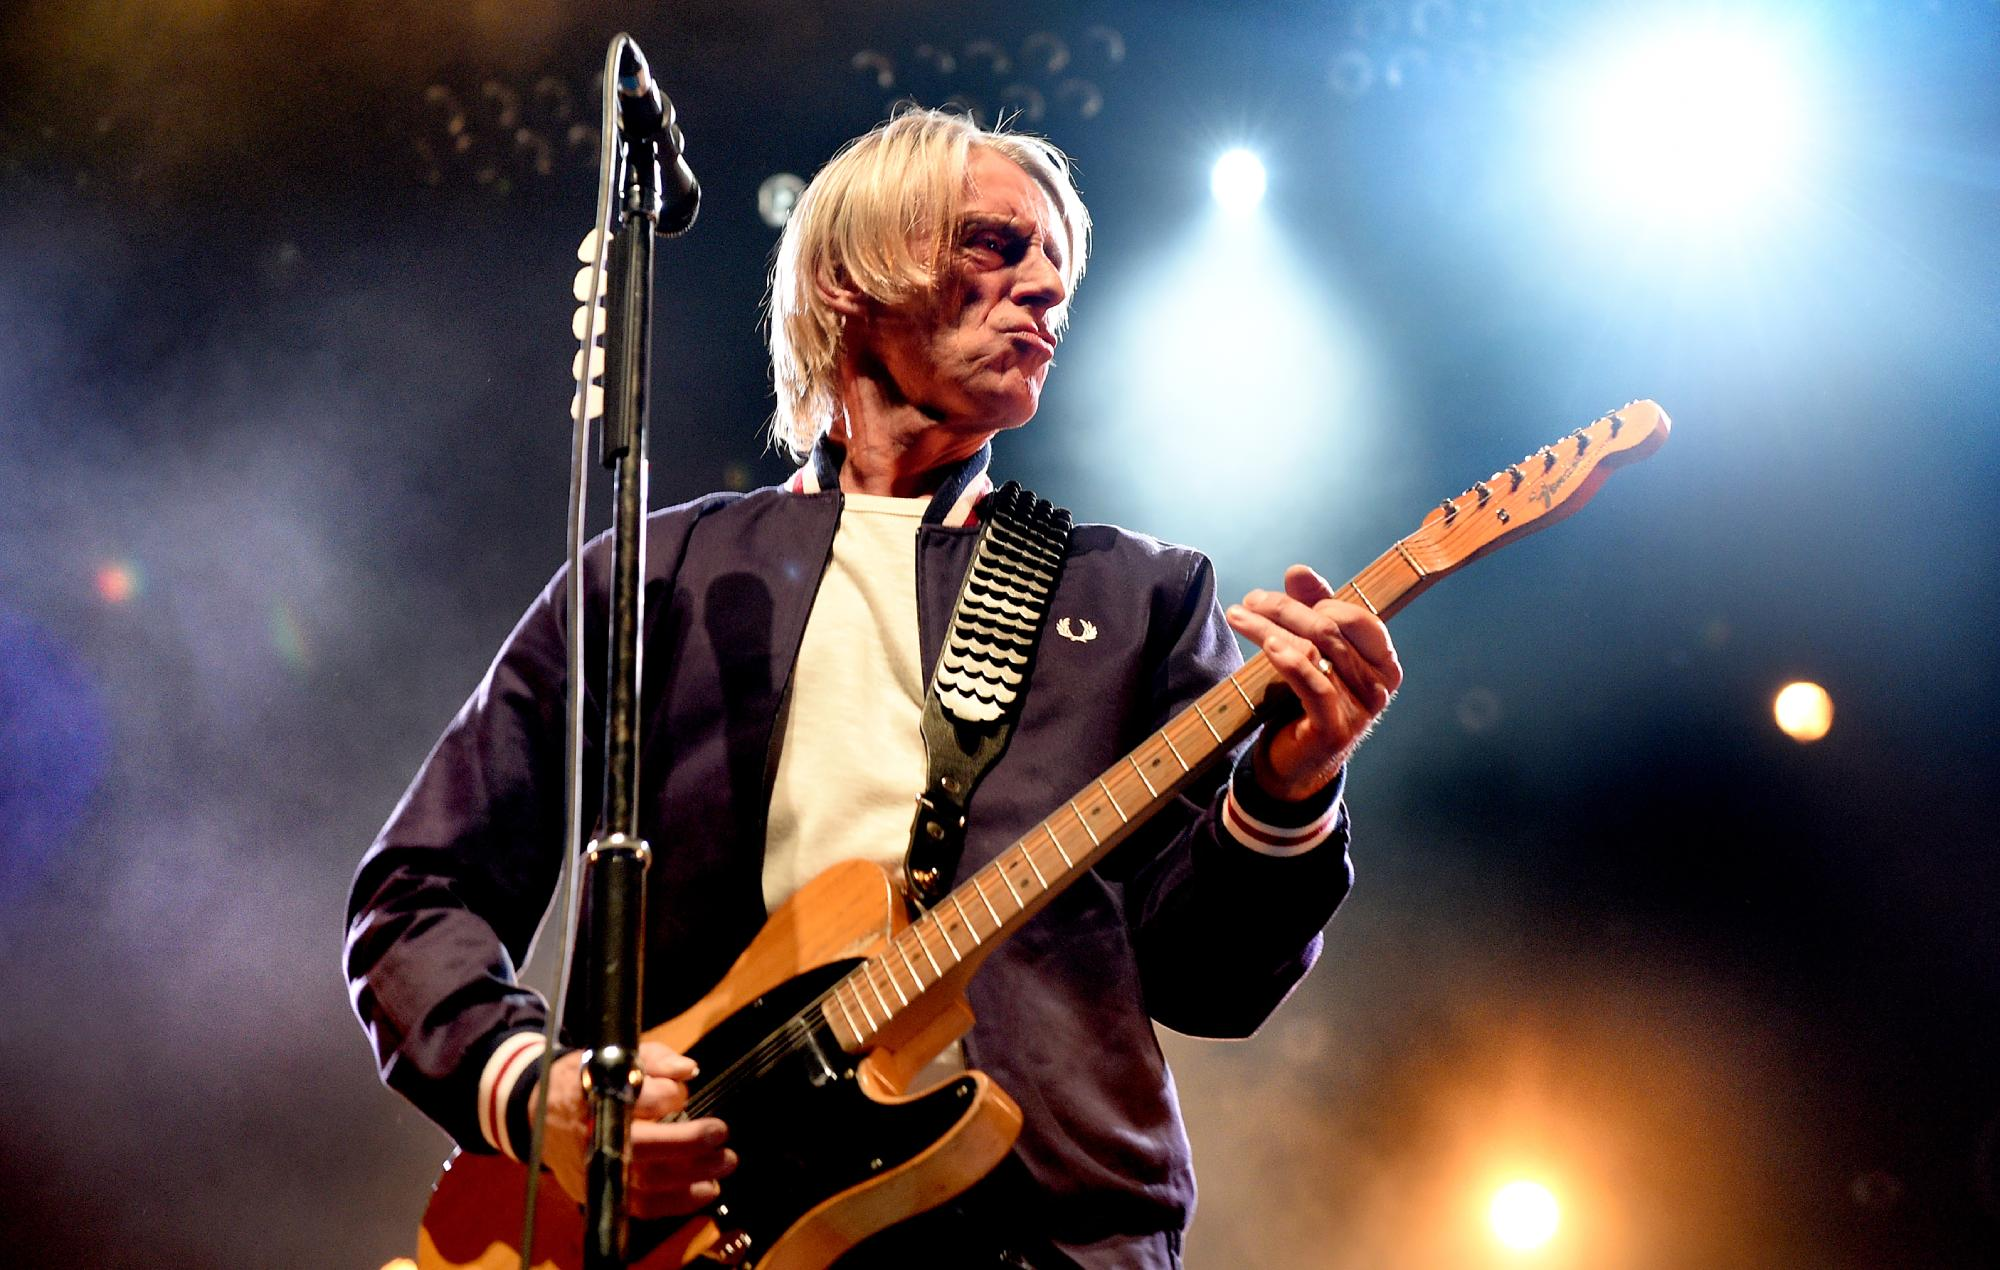 Paul Weller opens up about making music during lockdown